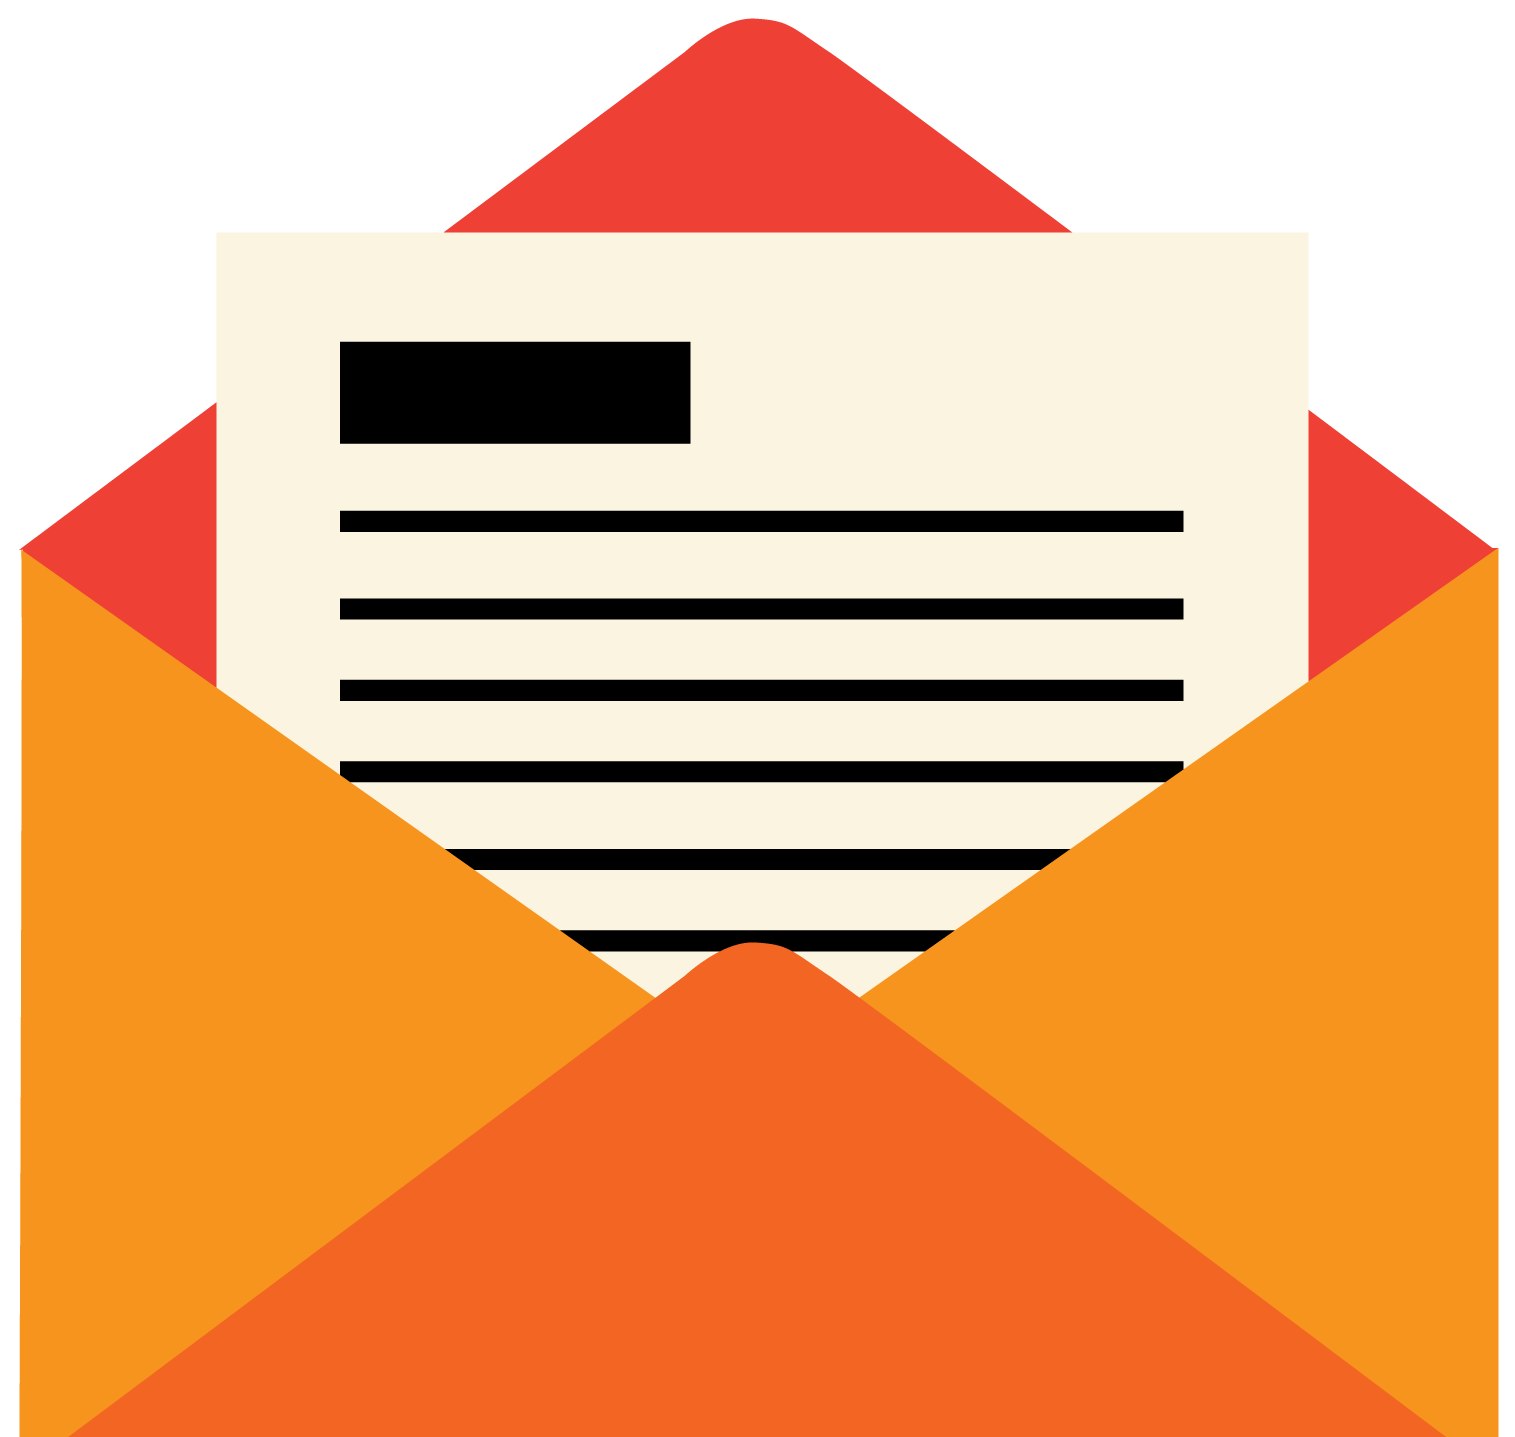 Mail clipart mail package. Mailing services print management